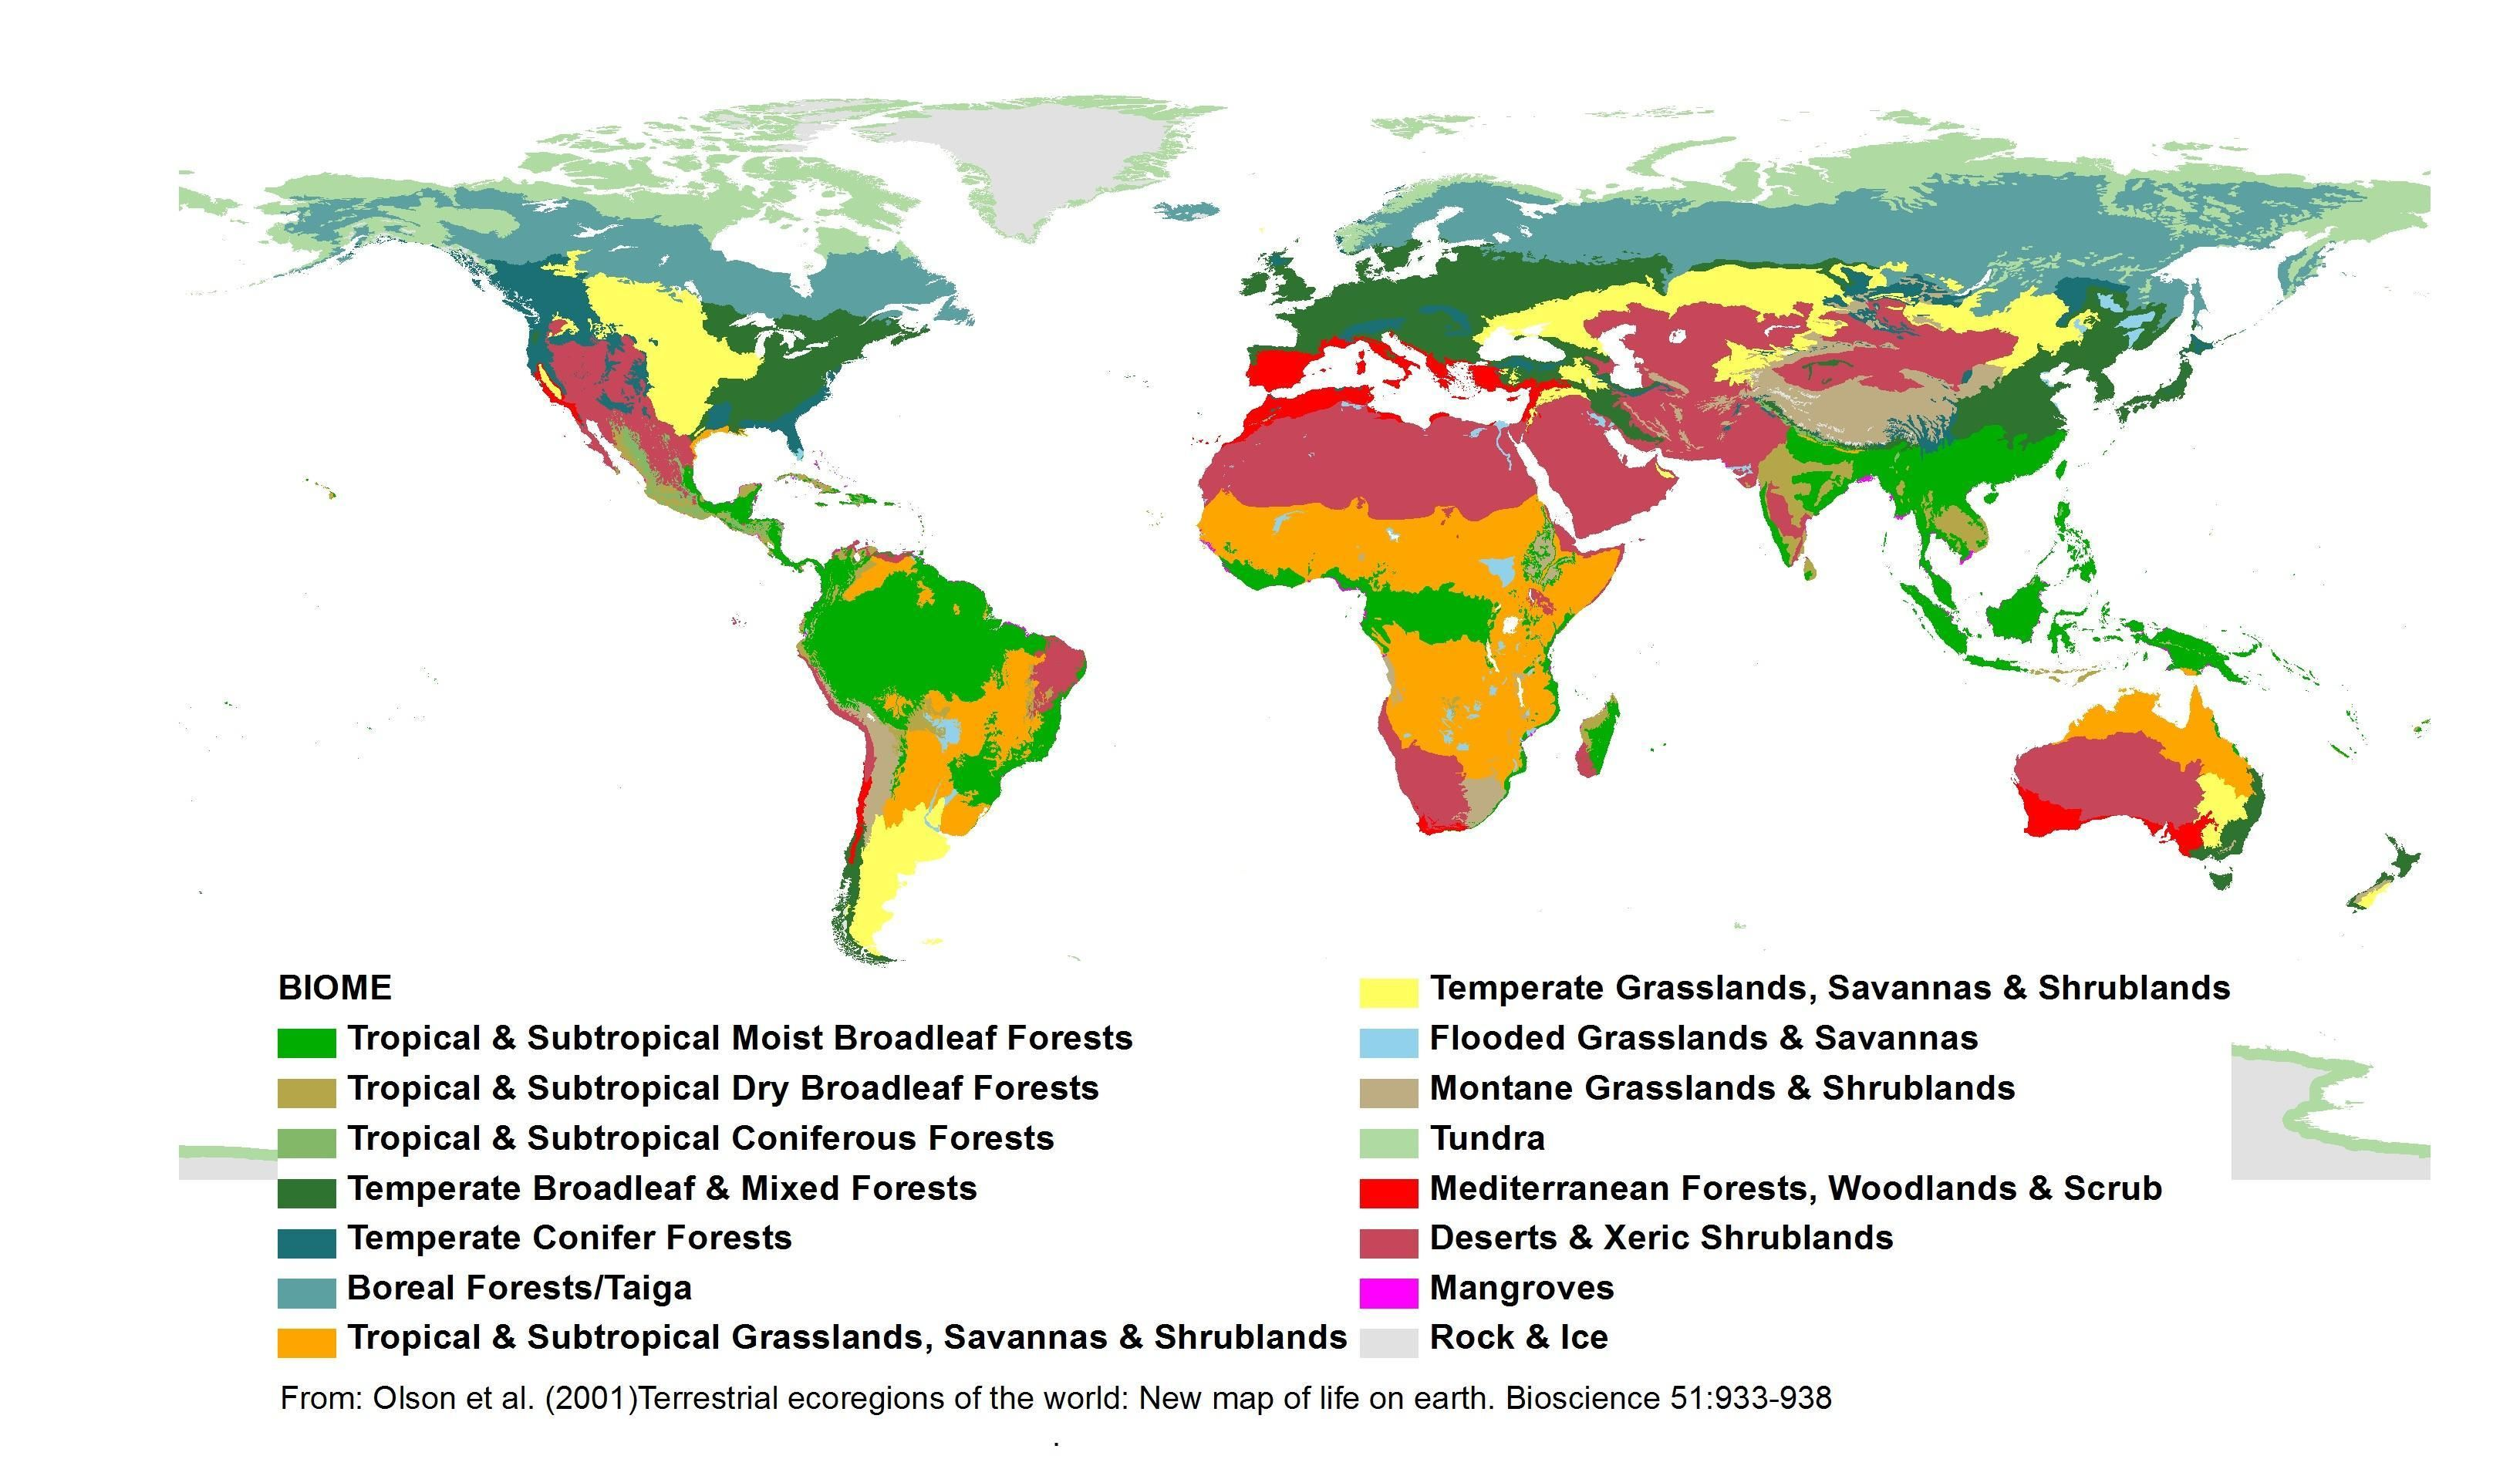 Terrestrial Ecoregions Of The World New Map Of Life On Earth Published By The American Institute Of Biological Science Olson Et Al 2 Biomes Earth Map Map [ 1914 x 3267 Pixel ]